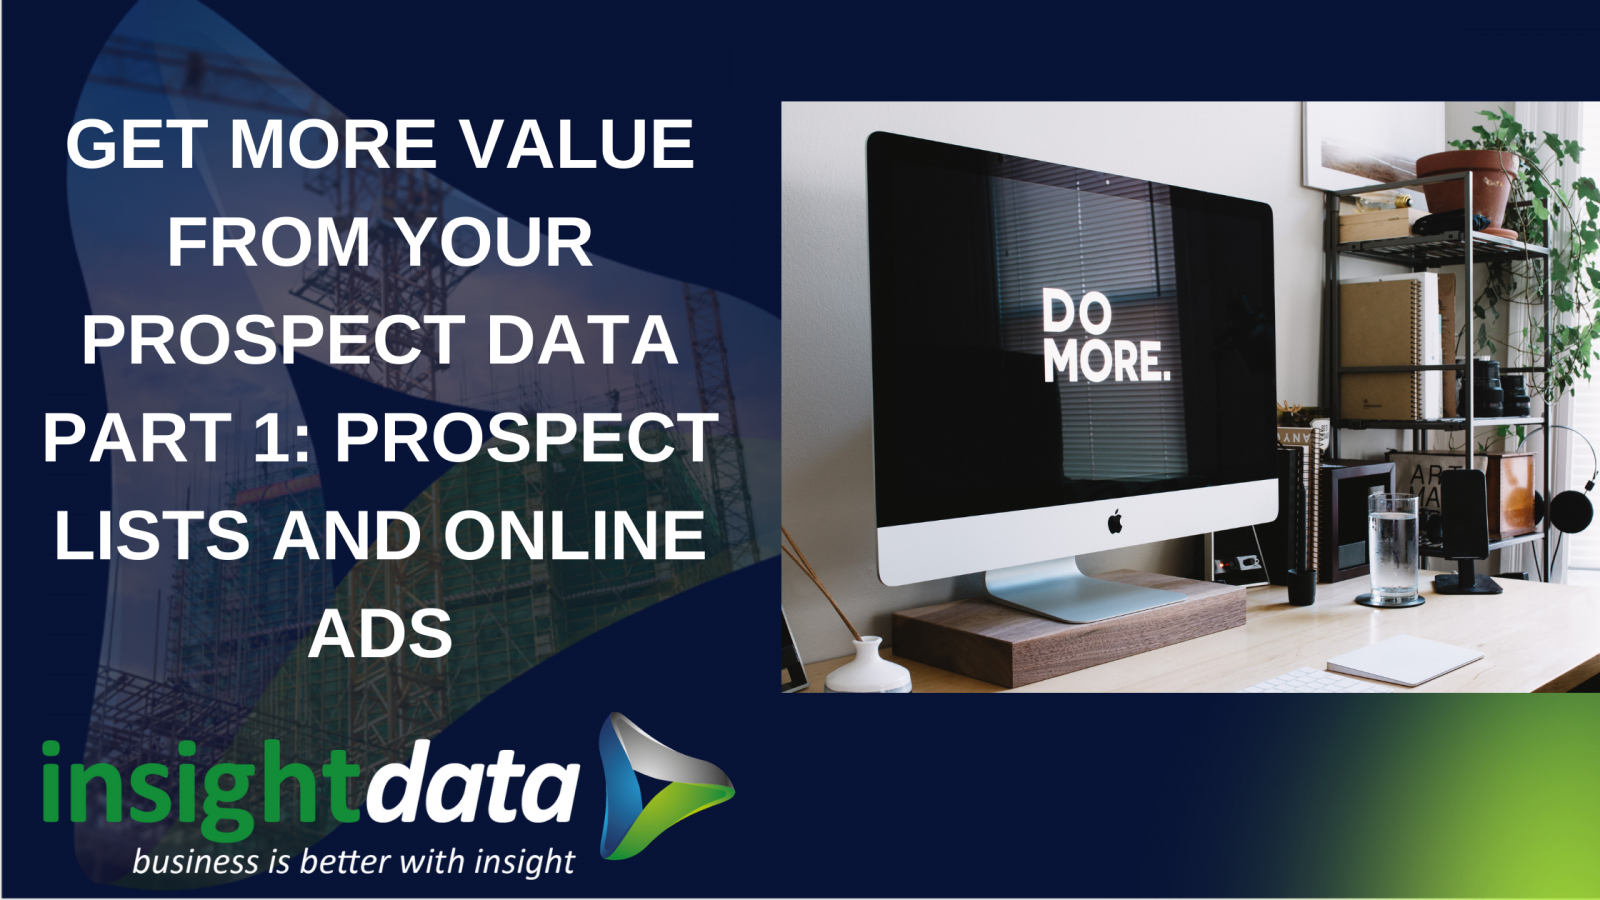 GET MORE VALUE FROM YOUR PROSPECT DATA PART 1_ PROSPECT LISTS AND ONLINE ADS article representing Insight Data